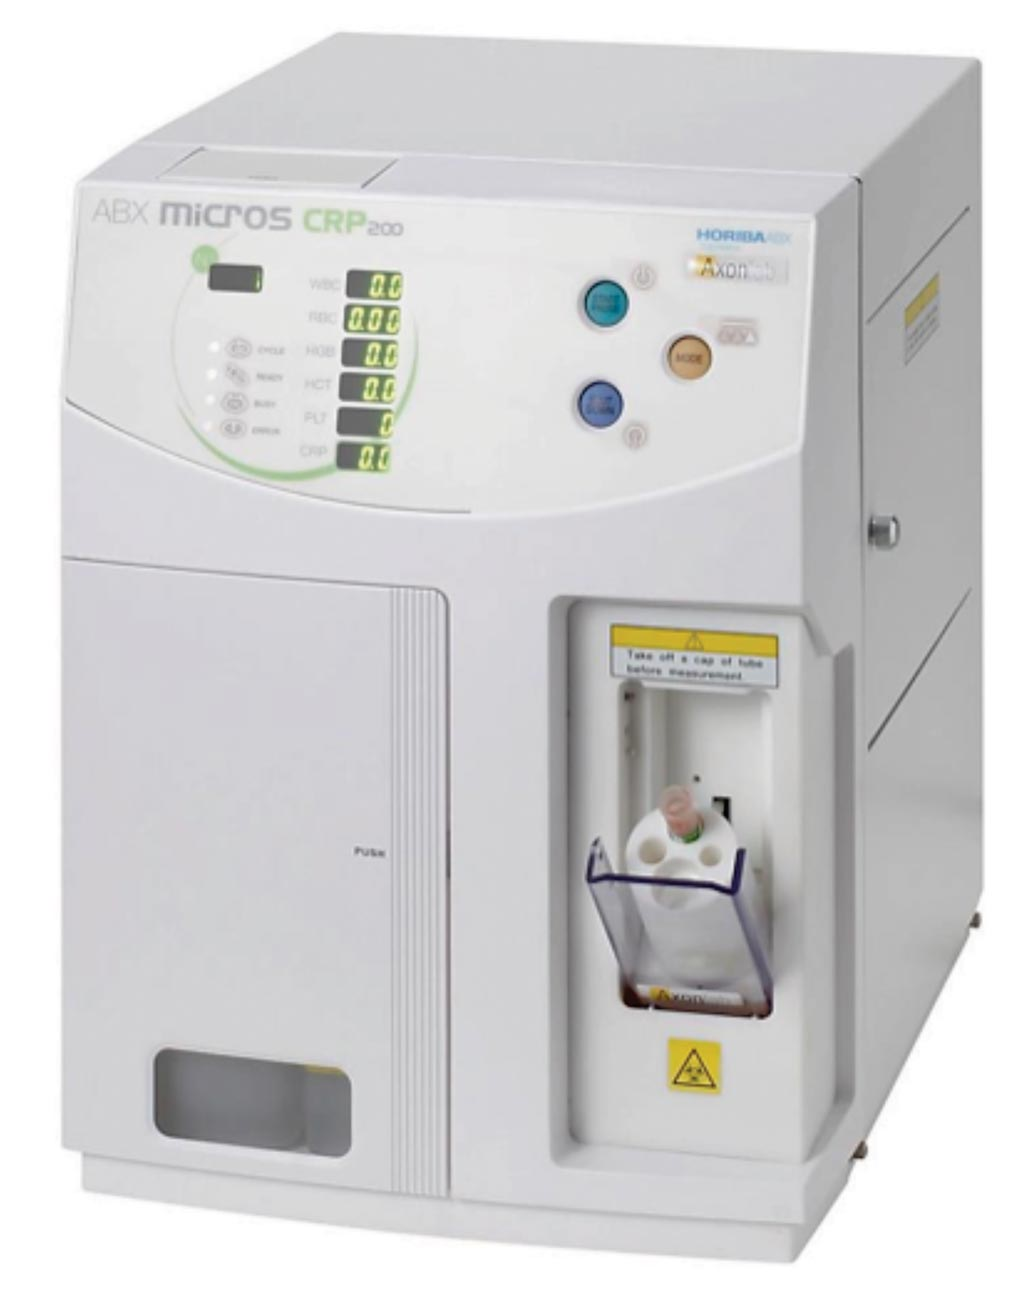 Image: The ABX Micros CRP 200 hematology analyzer (Photo courtesy of Horiba Medical).